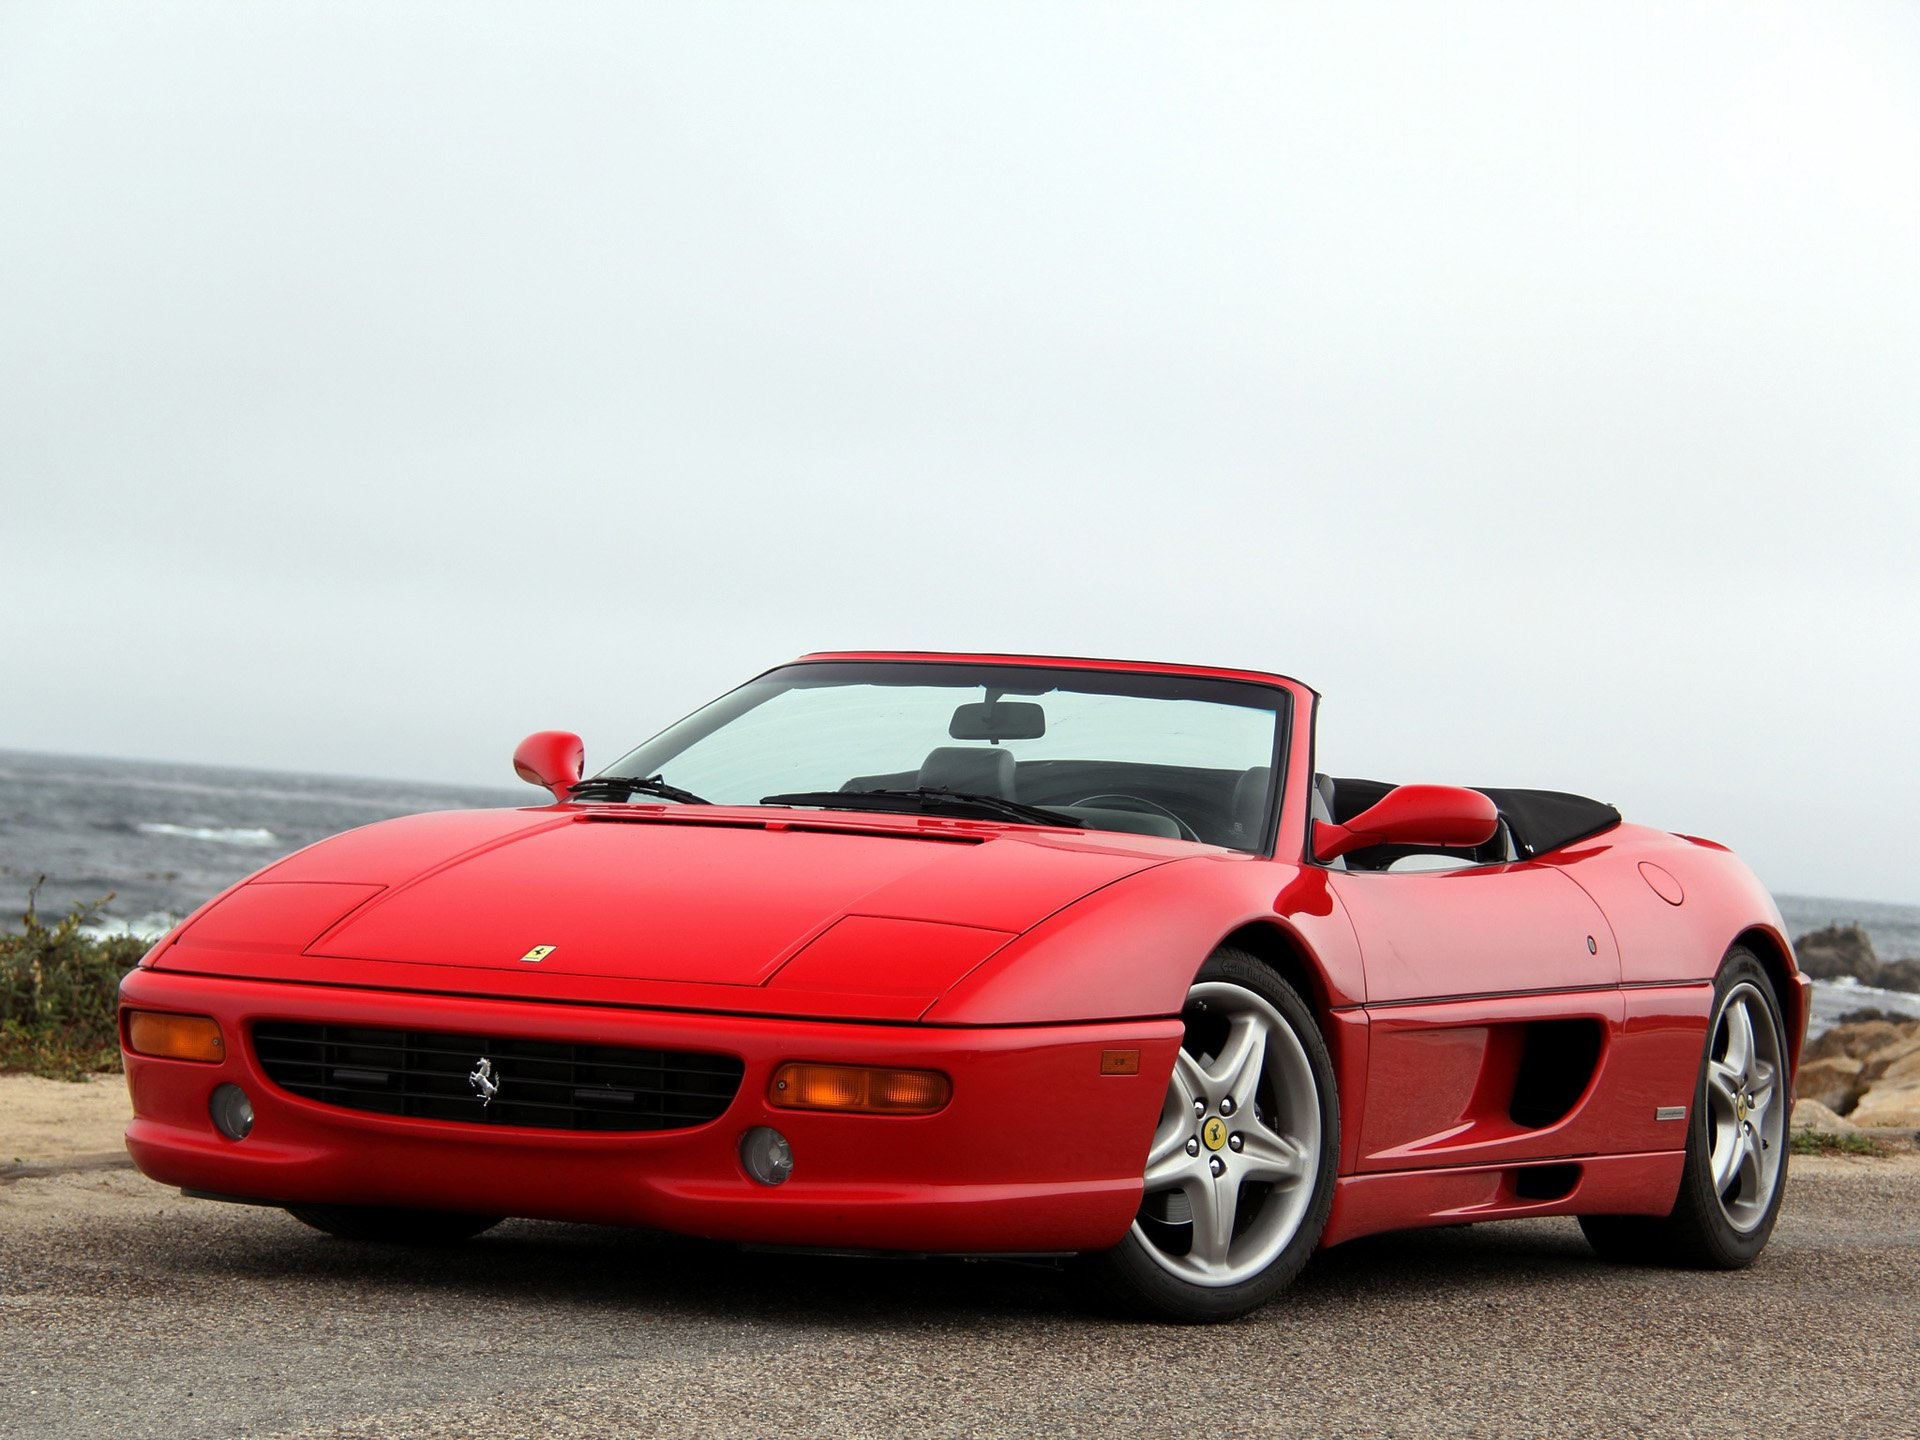 ferrari f355 spider wallpaper - photo #6